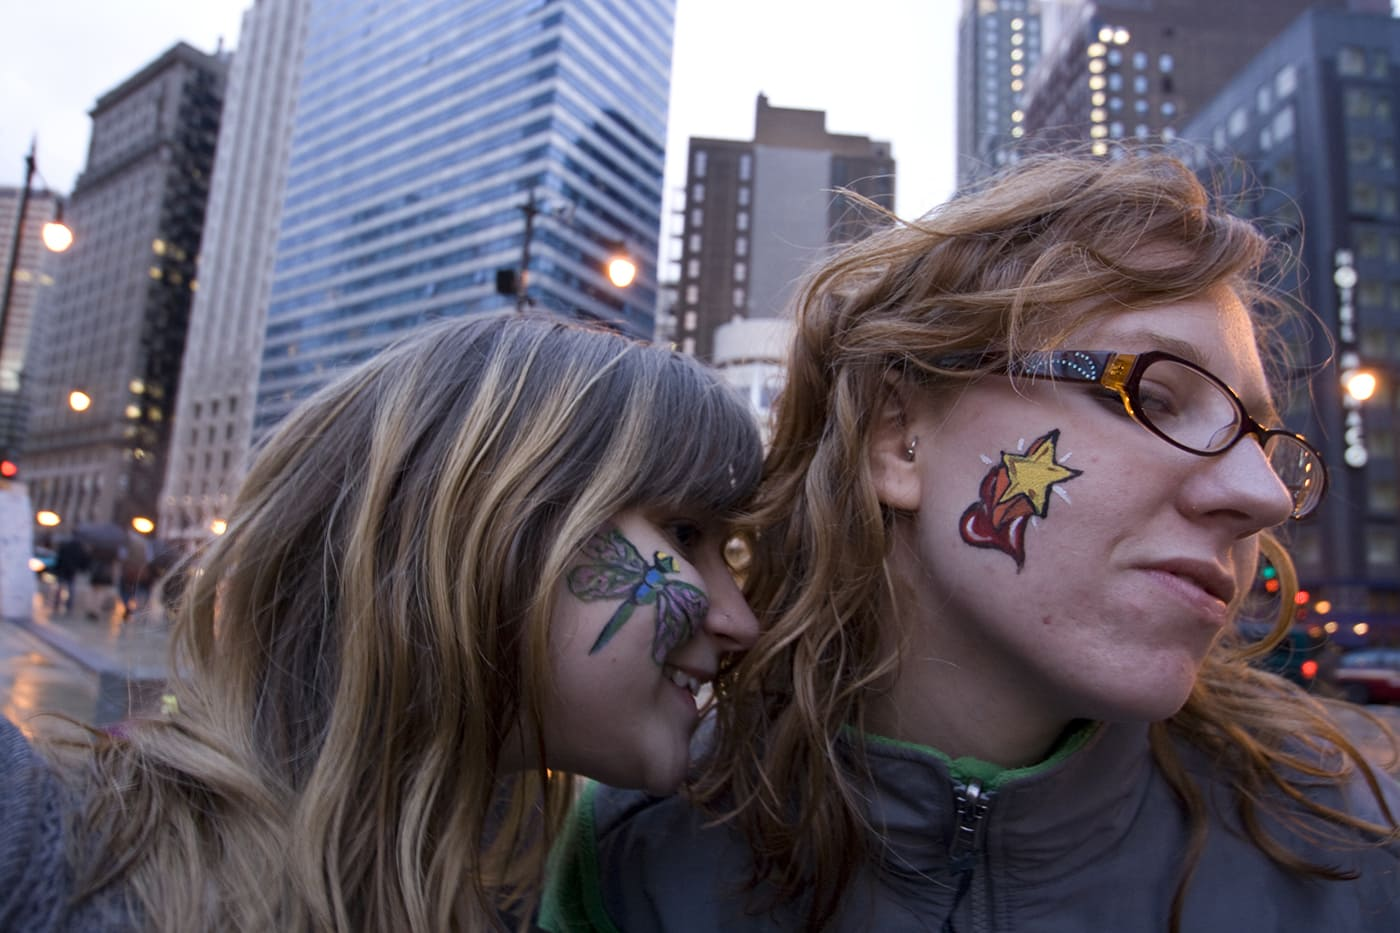 Face painting at Looptopia in Chicago, Illinois.